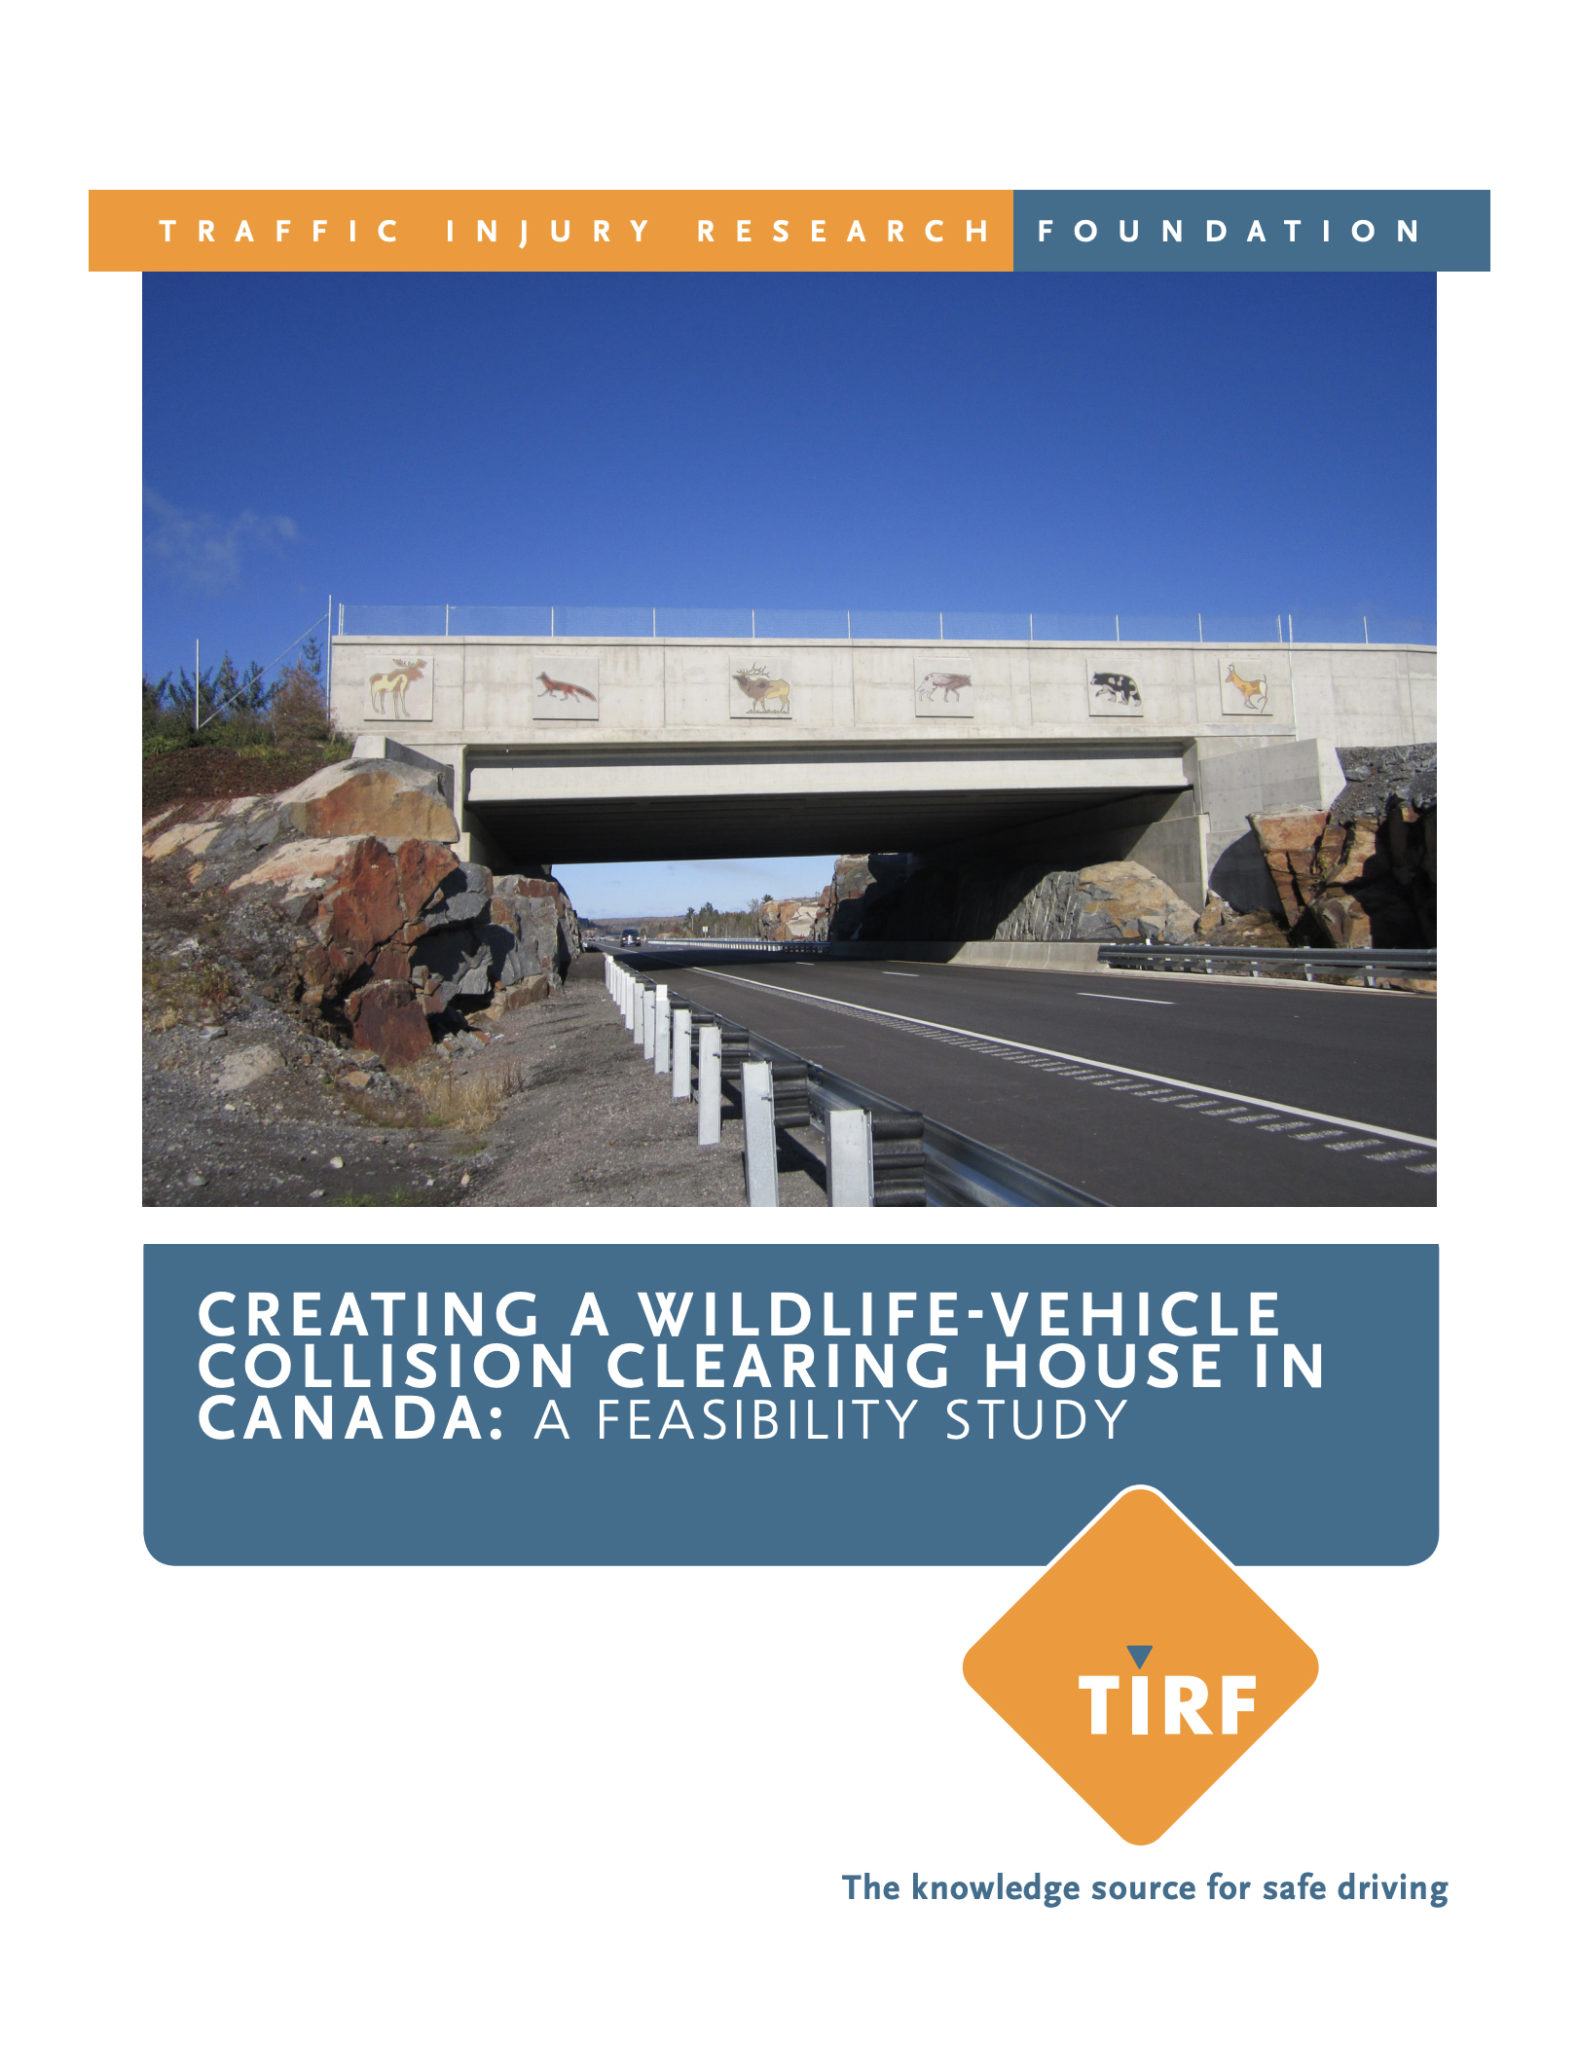 Creating a Wildlife-Vehicle Collision Clearing House in Canada: A Feasibility Study (2012)